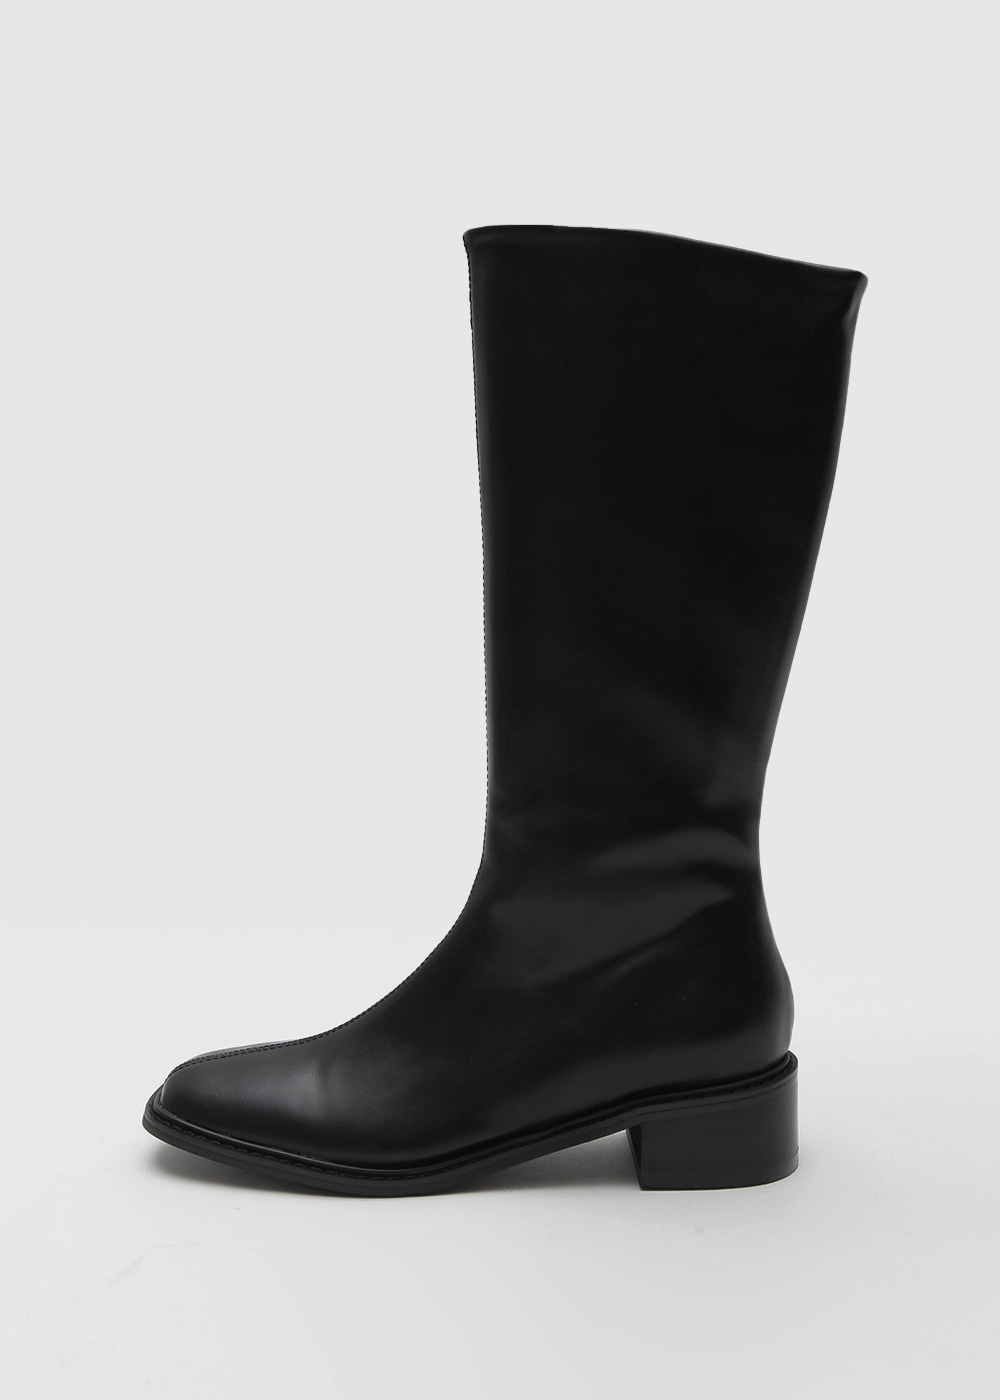 Daily Square Half Boots